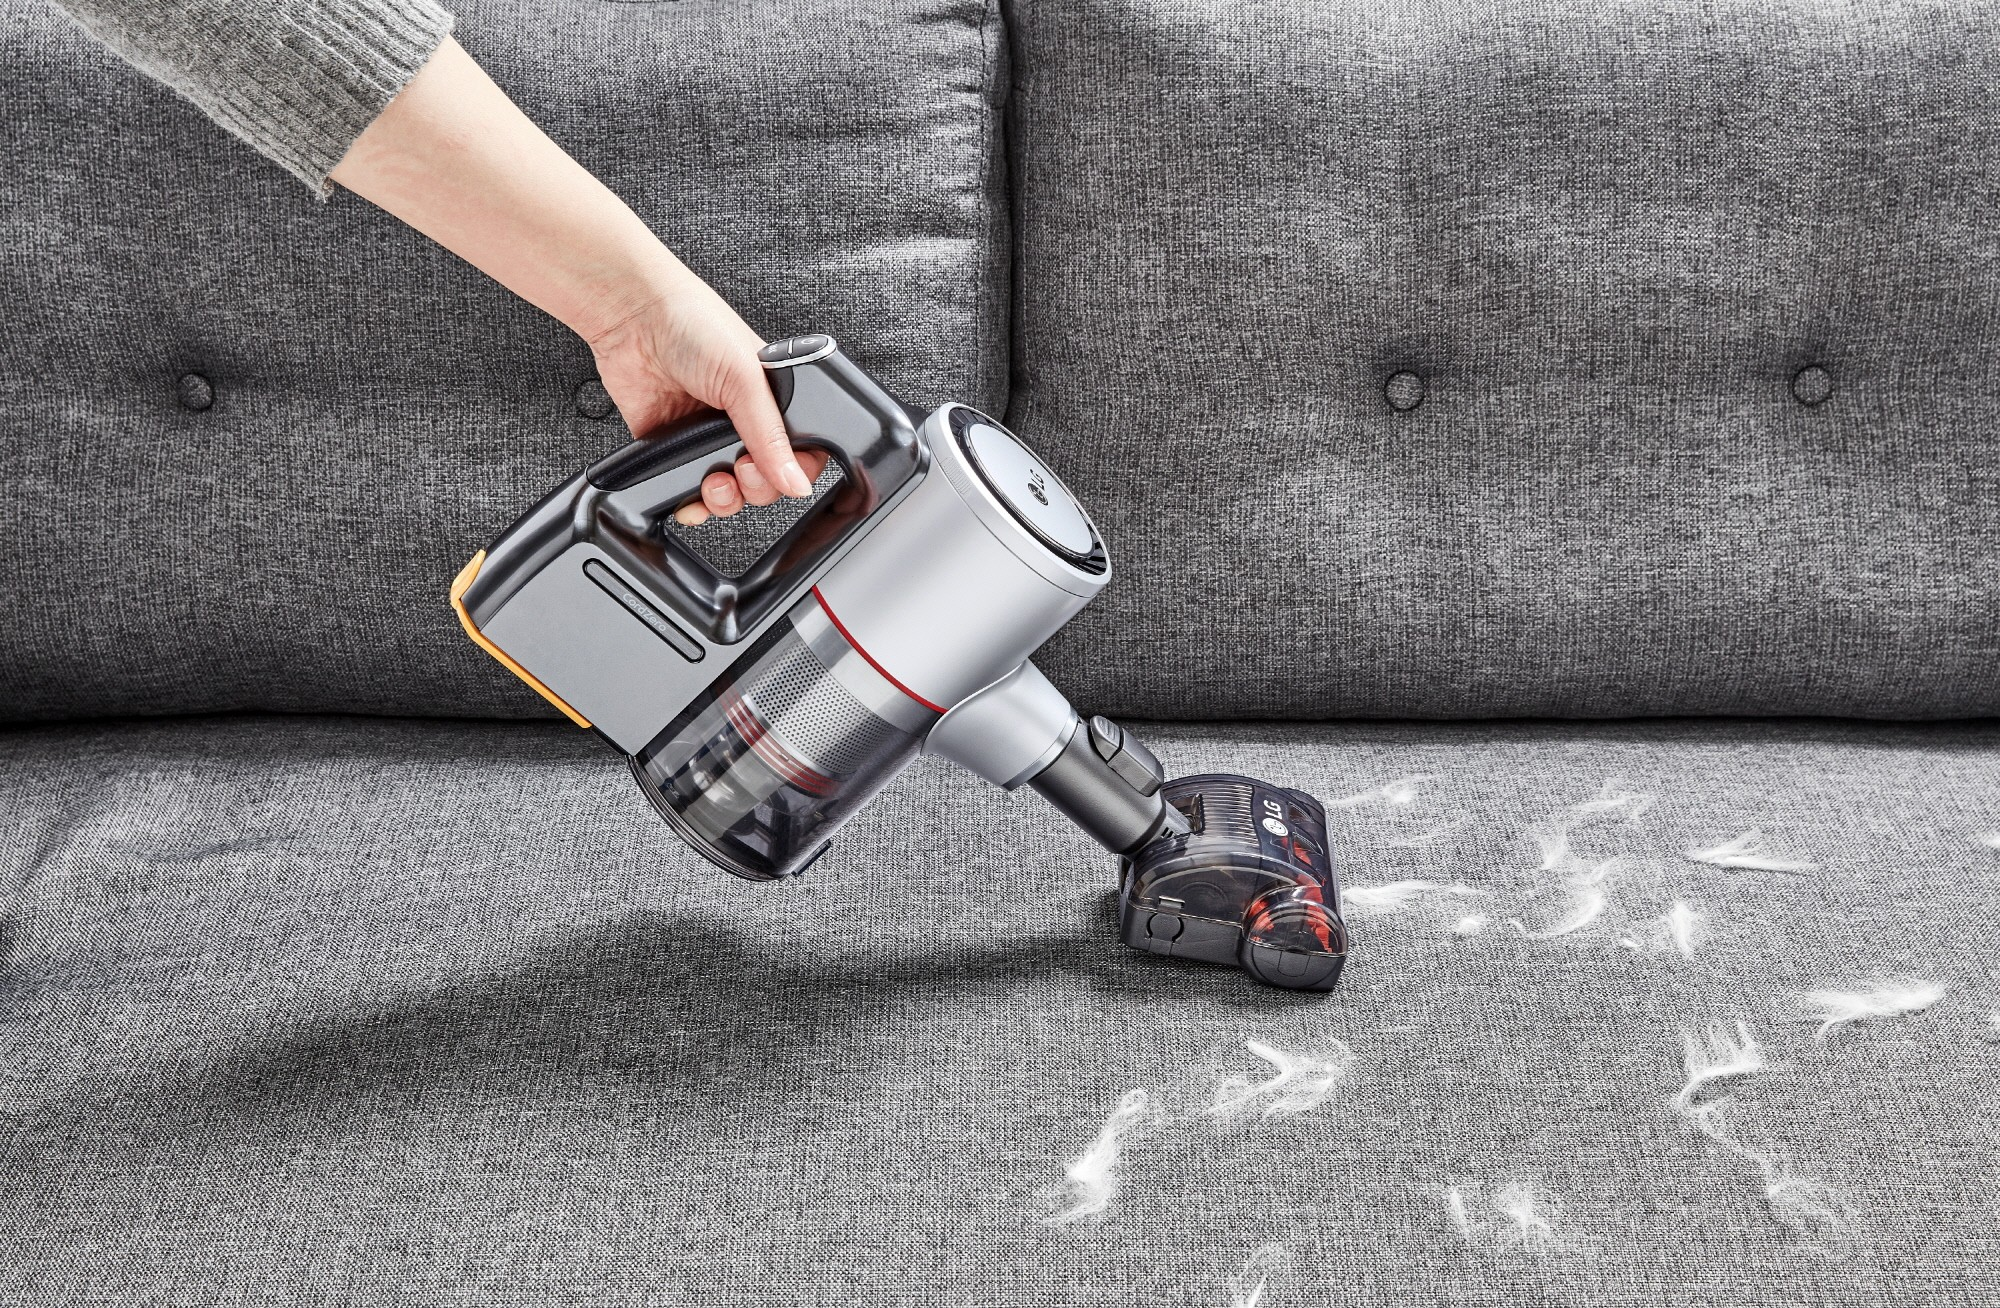 View of a person vacuuming up feathers from a couch with the LG CordZero Handstick